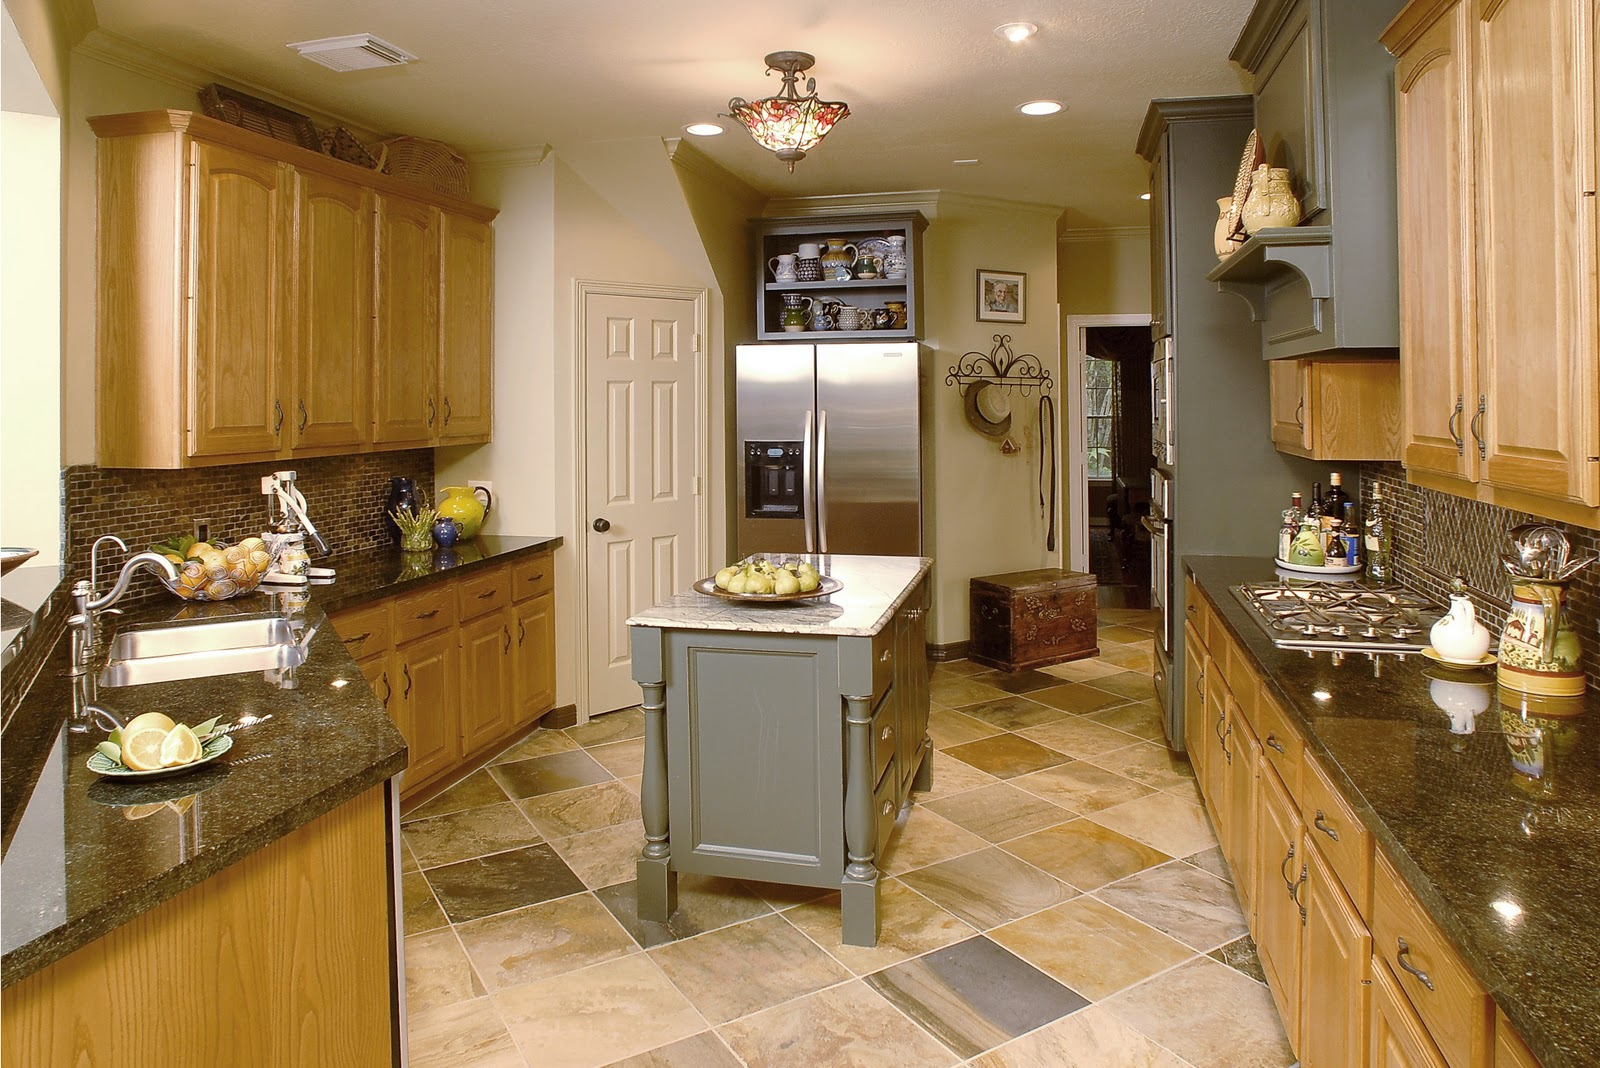 design in wood What To Do With Oak Cabinets